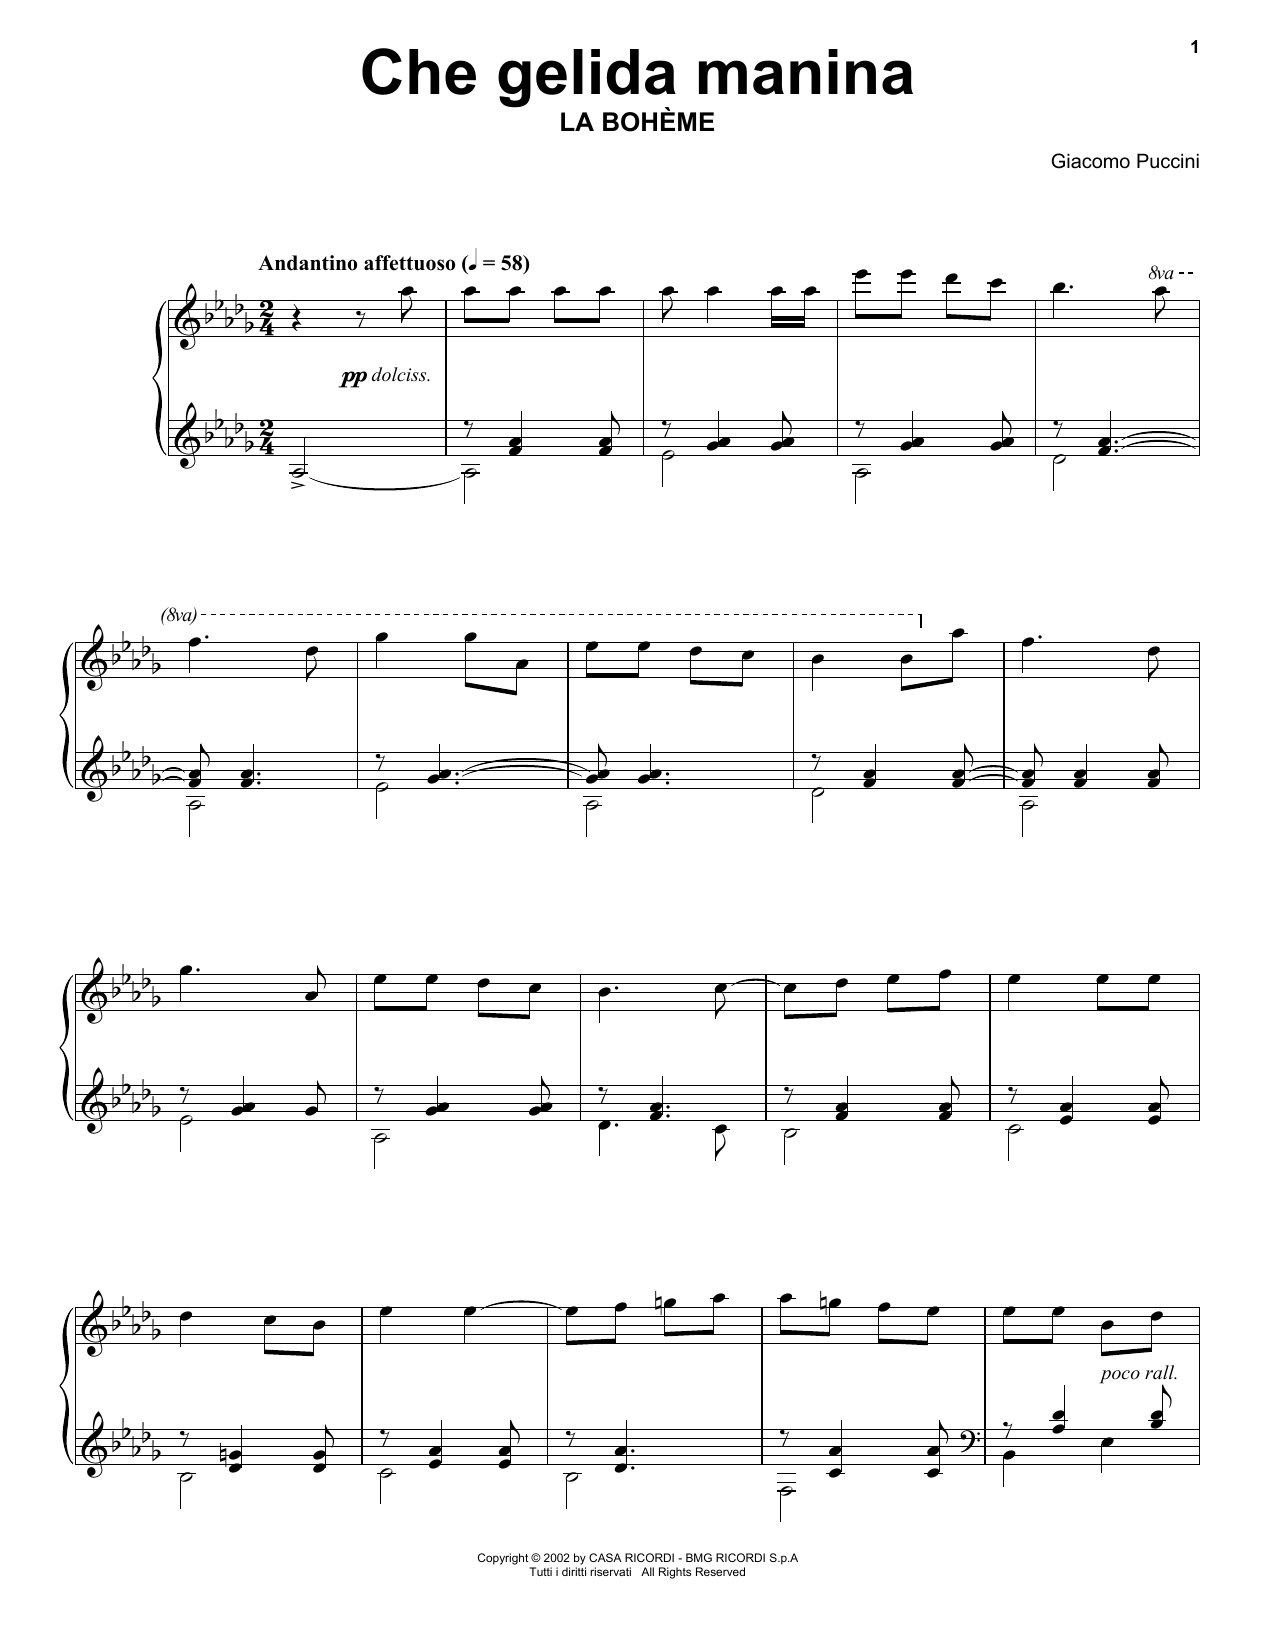 Che gelida manina from La Bohème Sheet Music